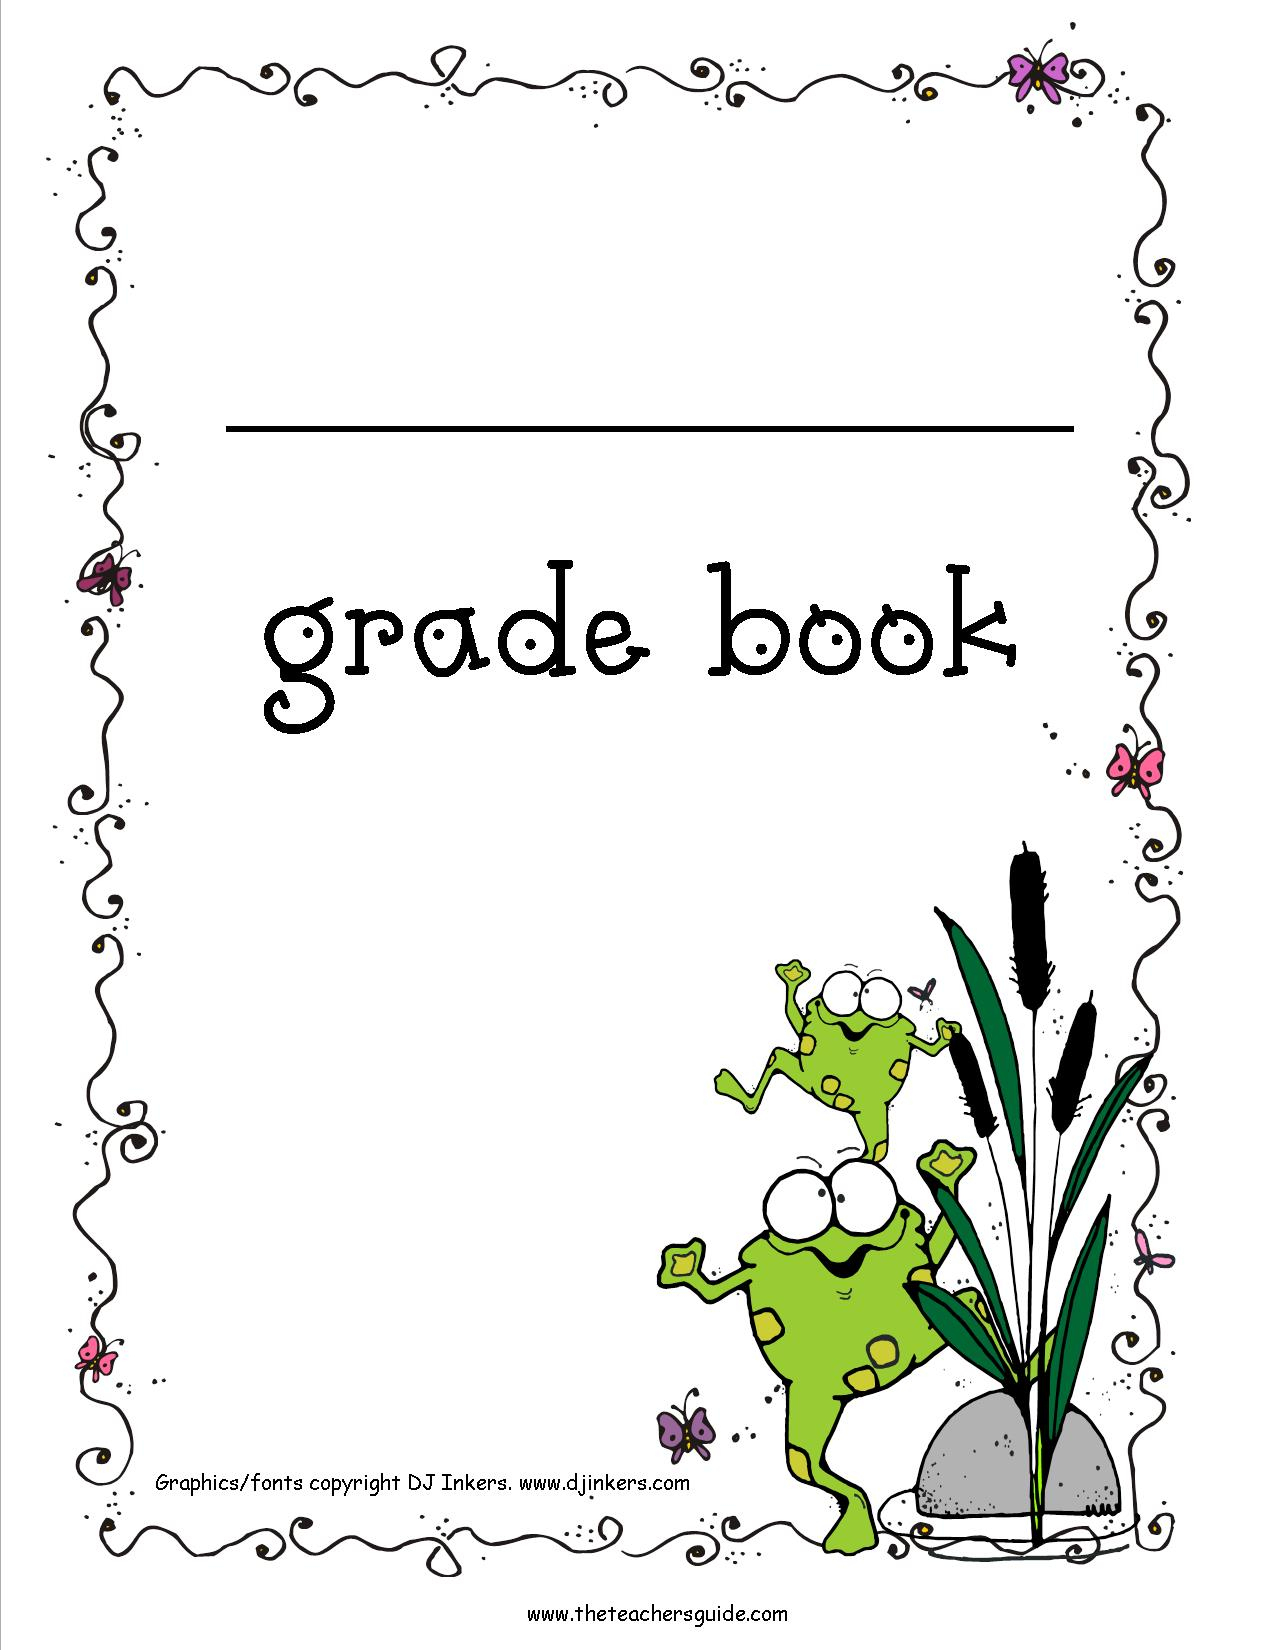 Free Printable Grade Books - Free Printable Books